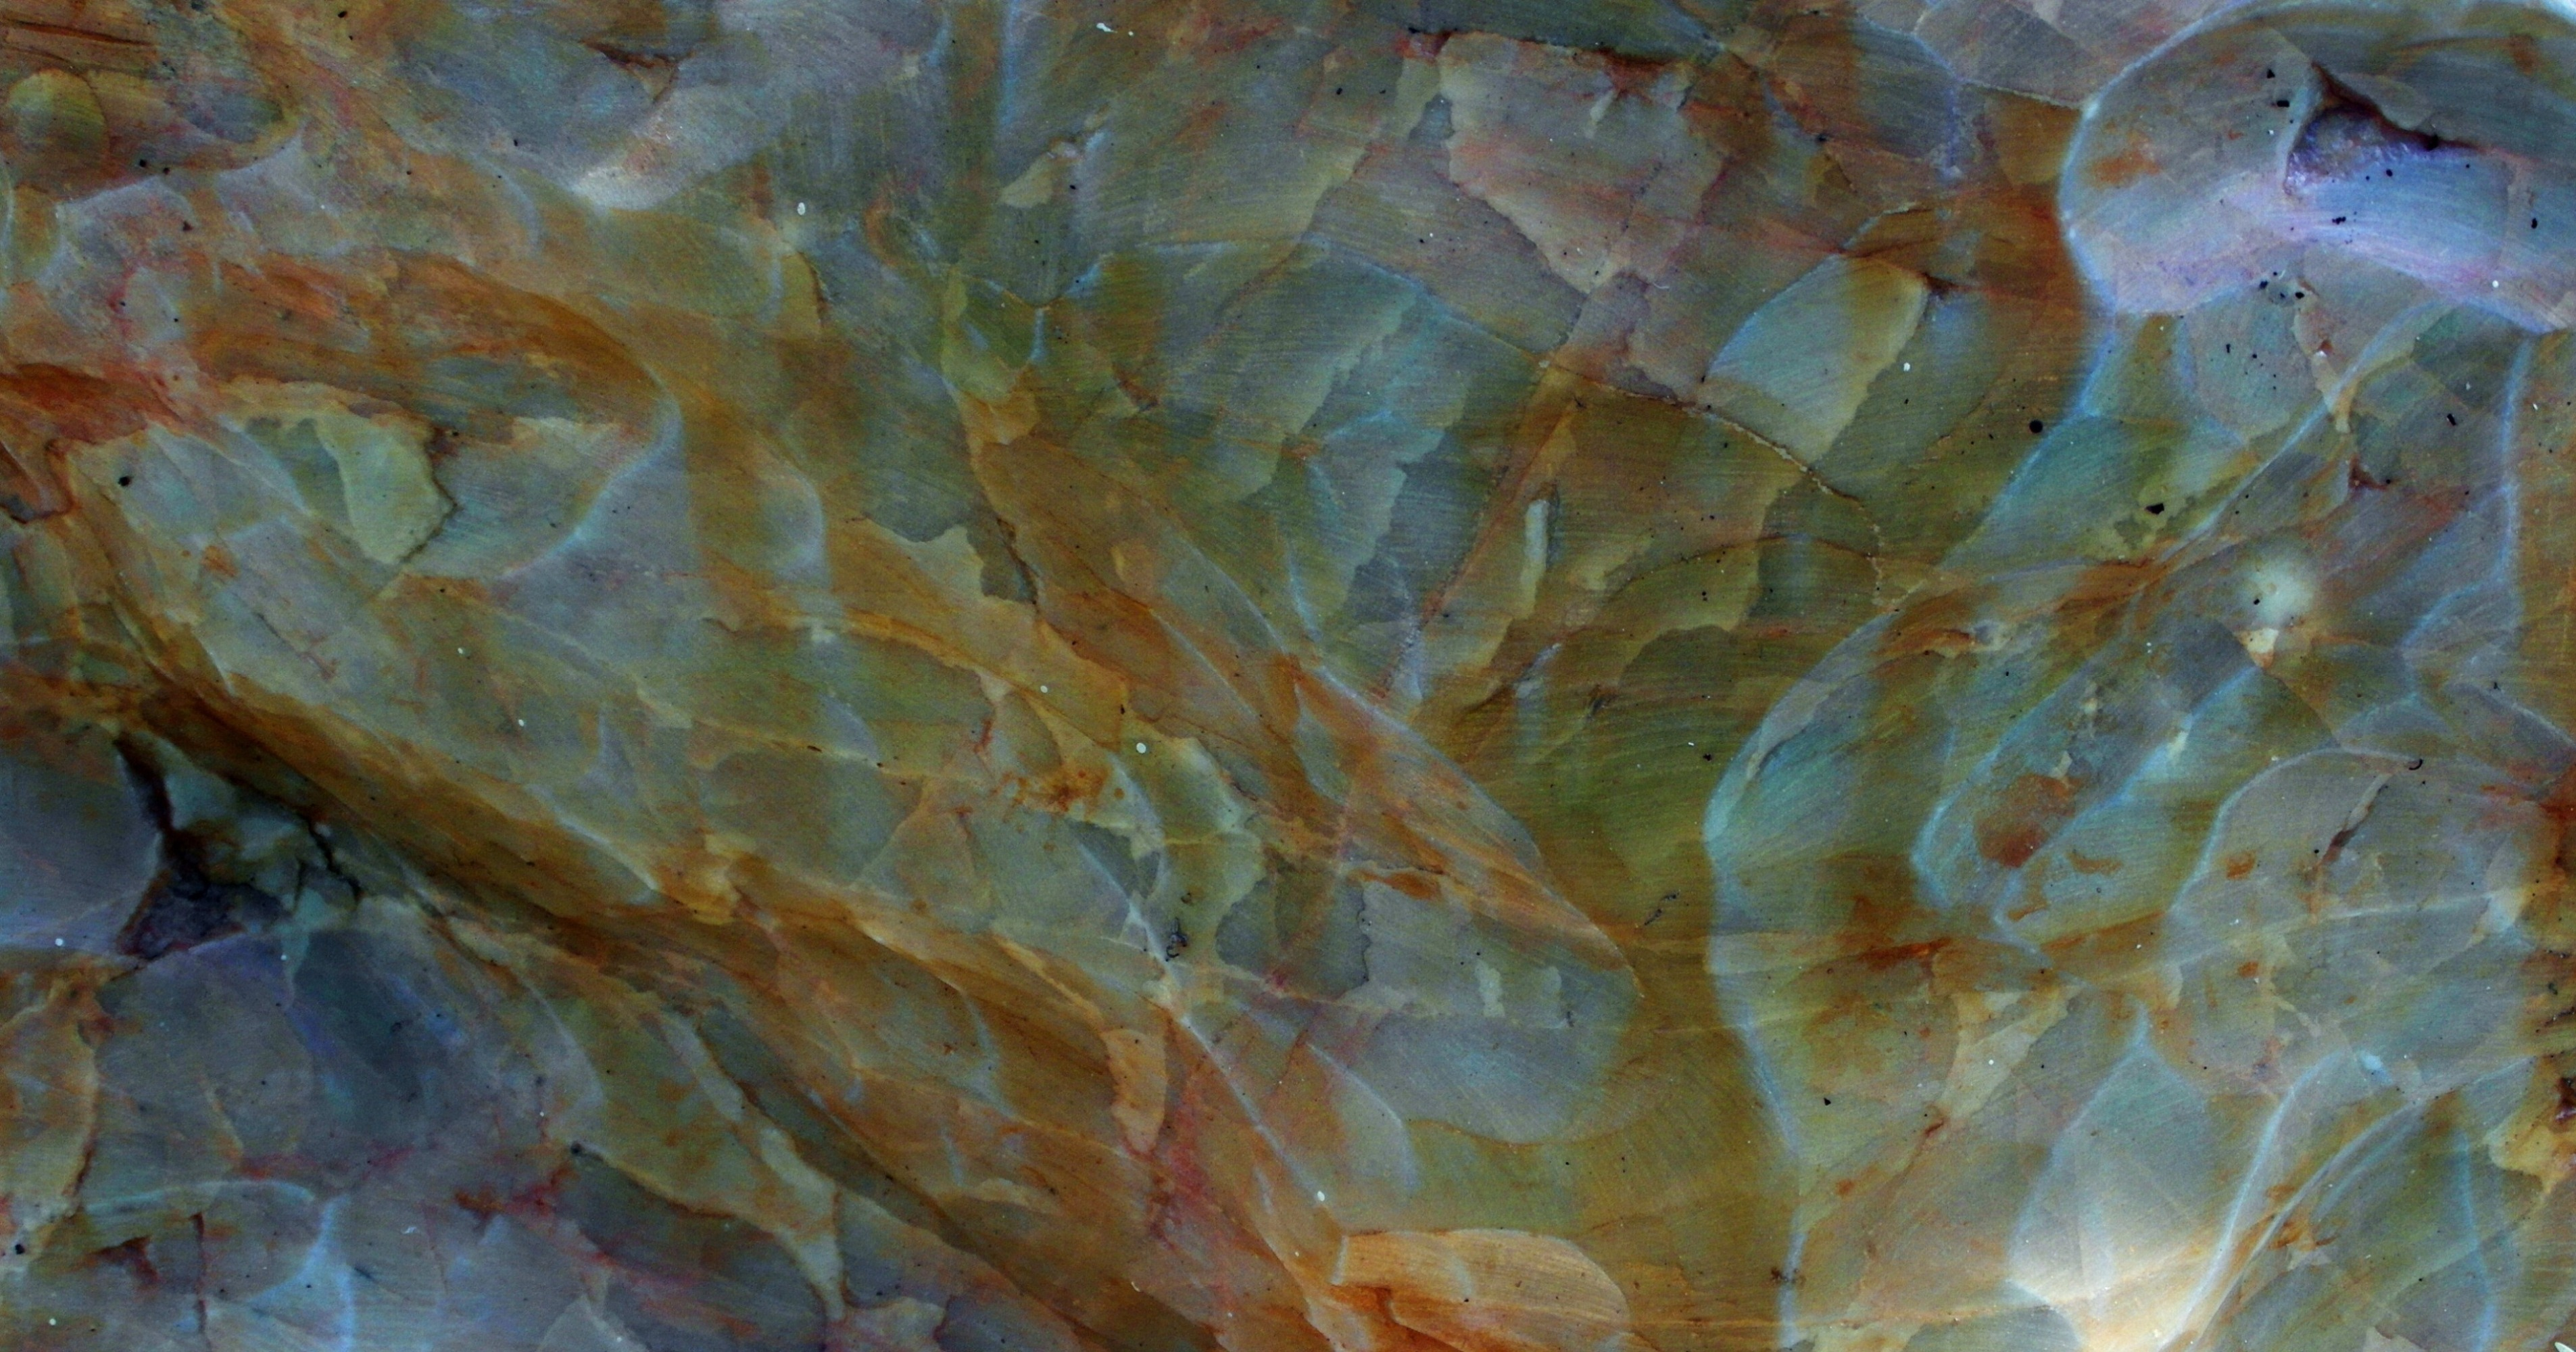 Multi-Colored Rock Background, Abstract, Quartz, Mineral, Minerals, HQ Photo